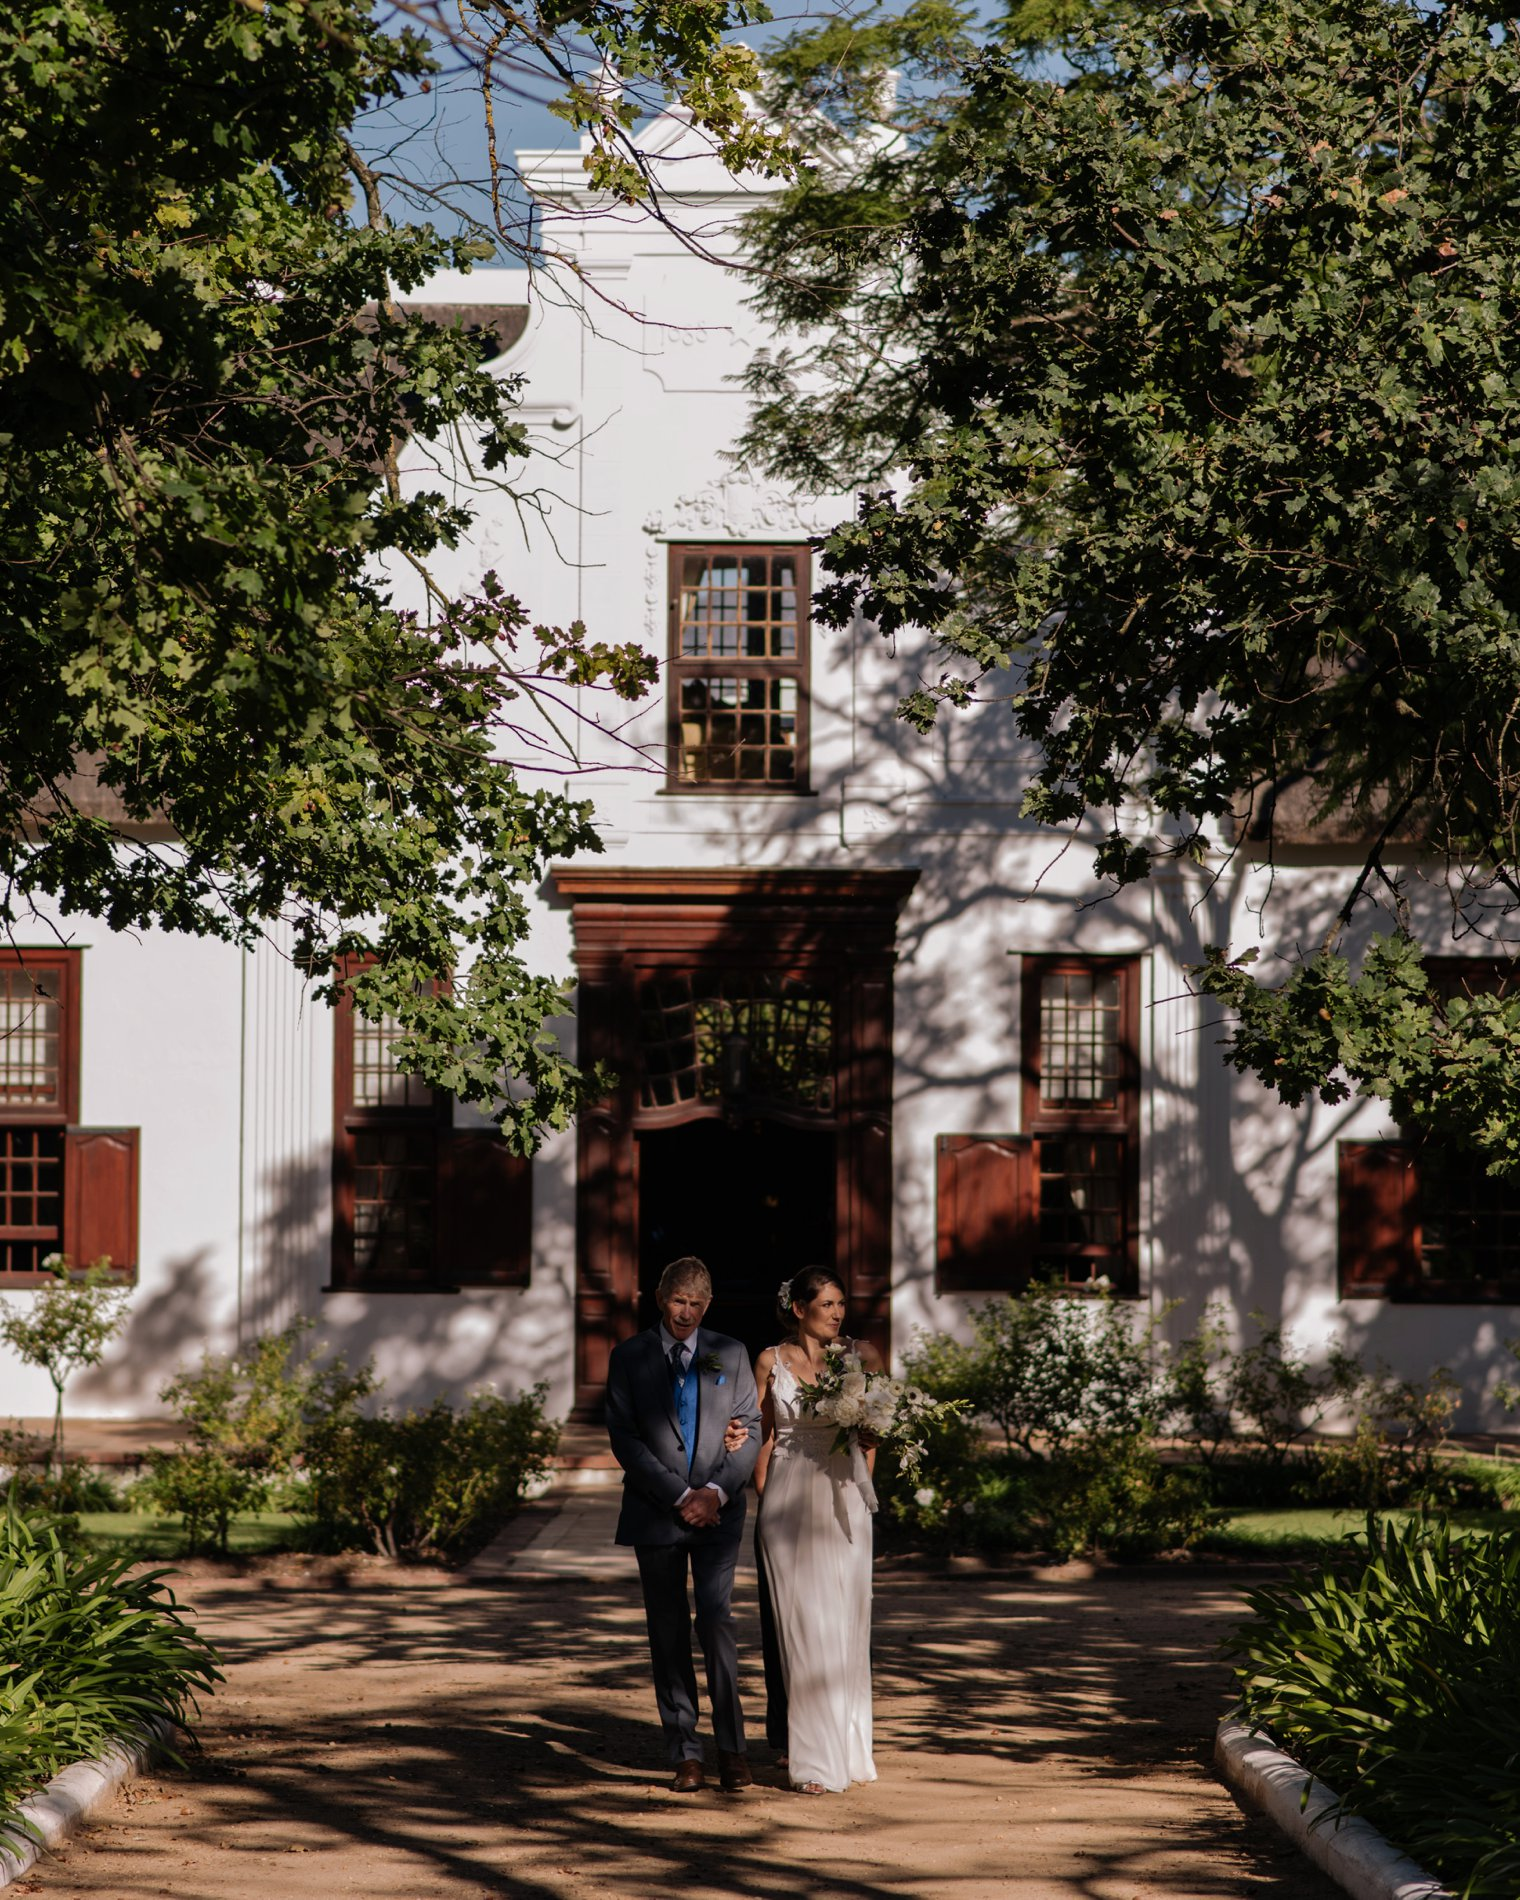 wedding ceremony at vrede en lust estate in stellenbosch